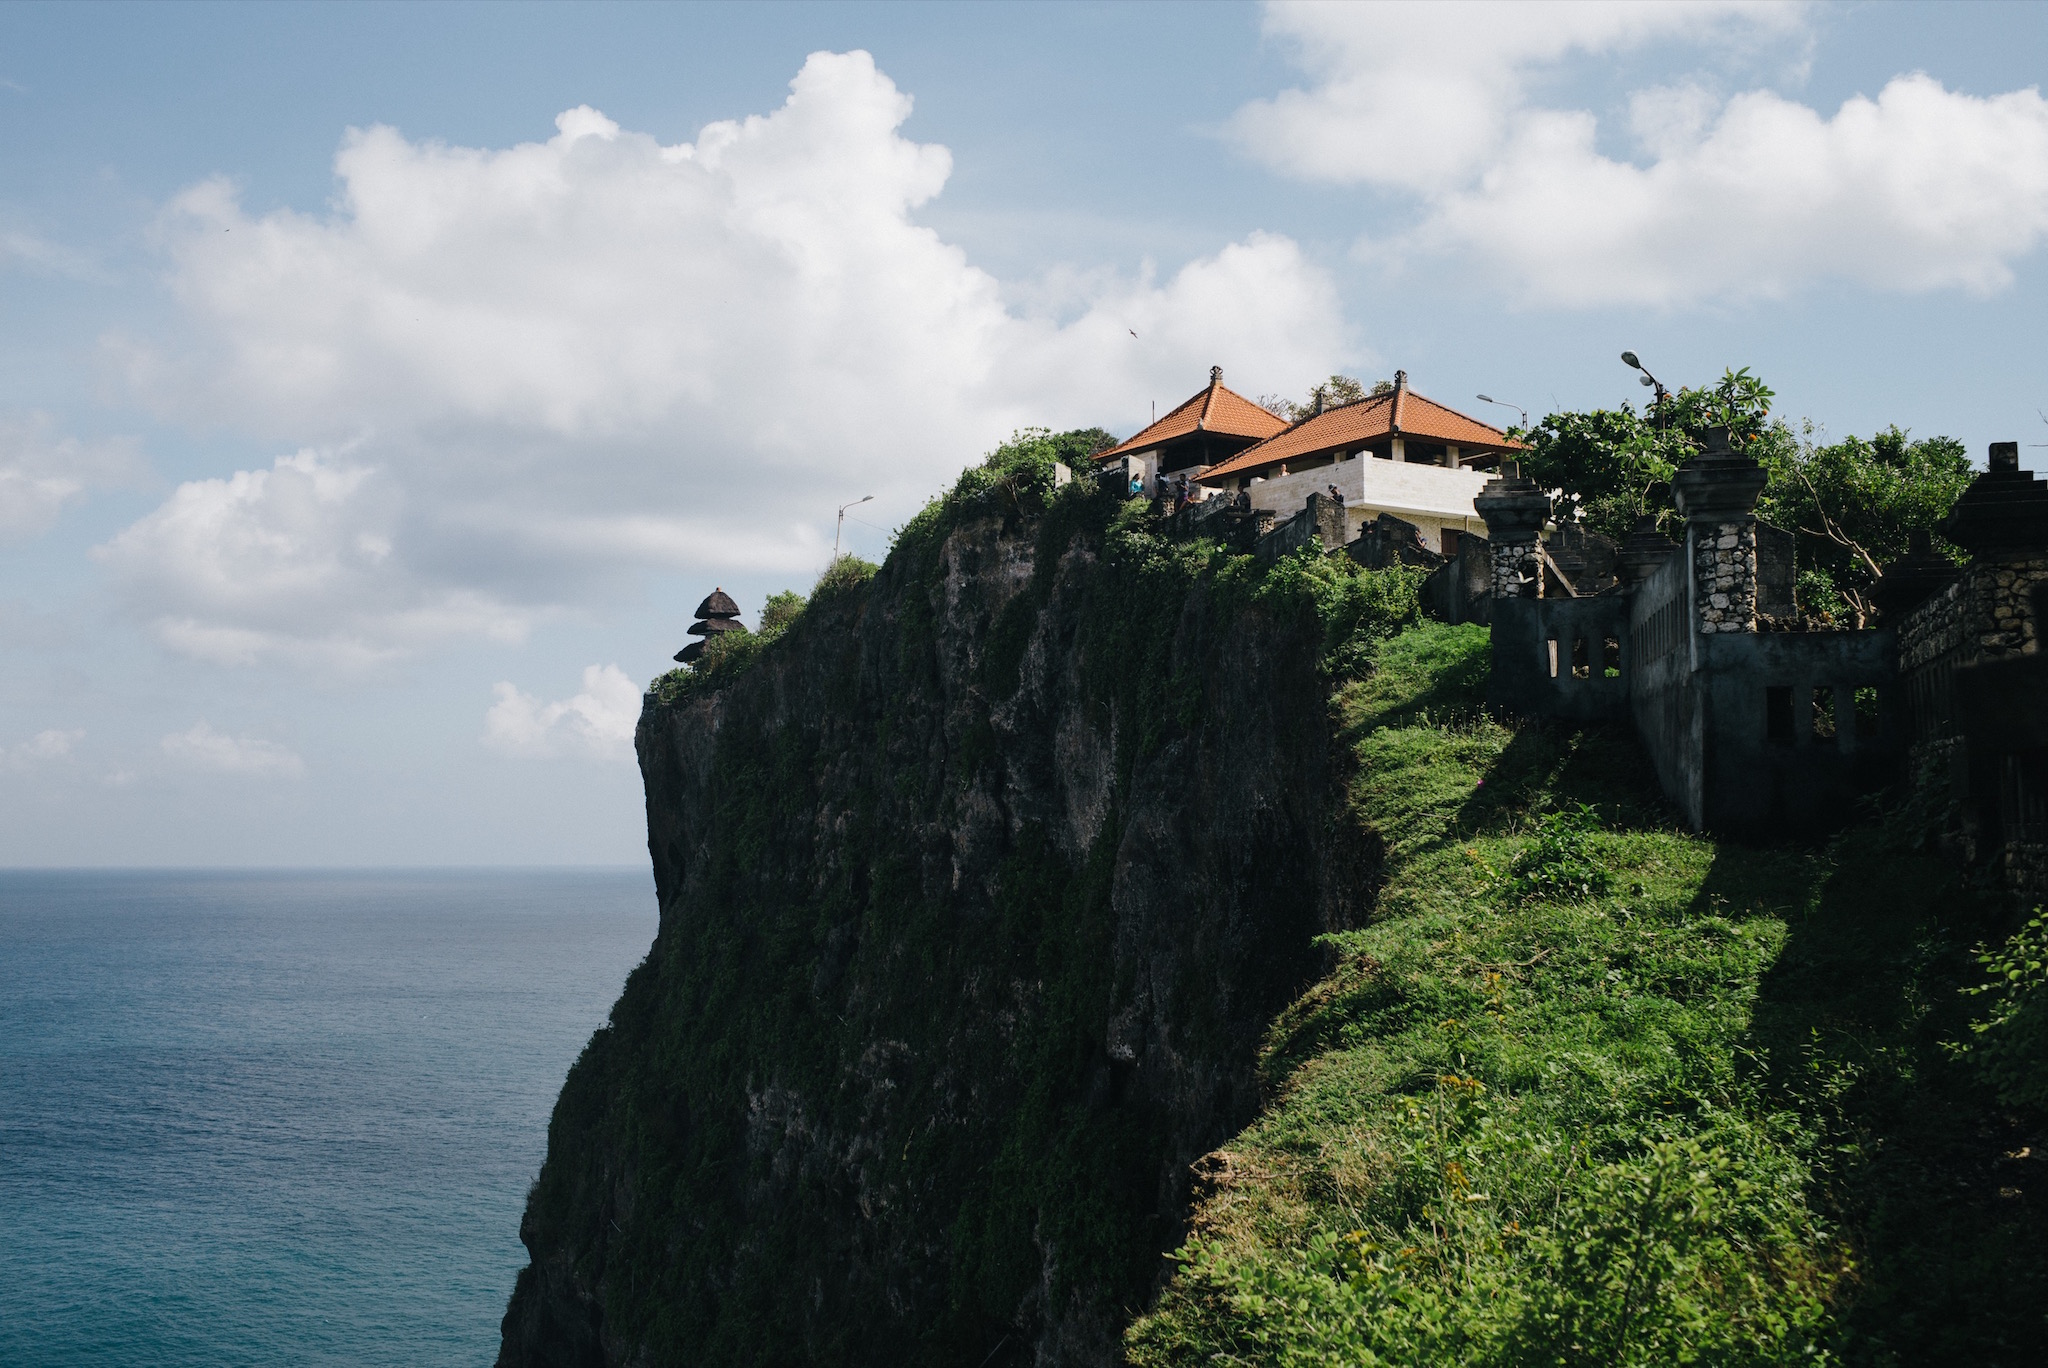 Uluwatu Temple along the cliff edge.